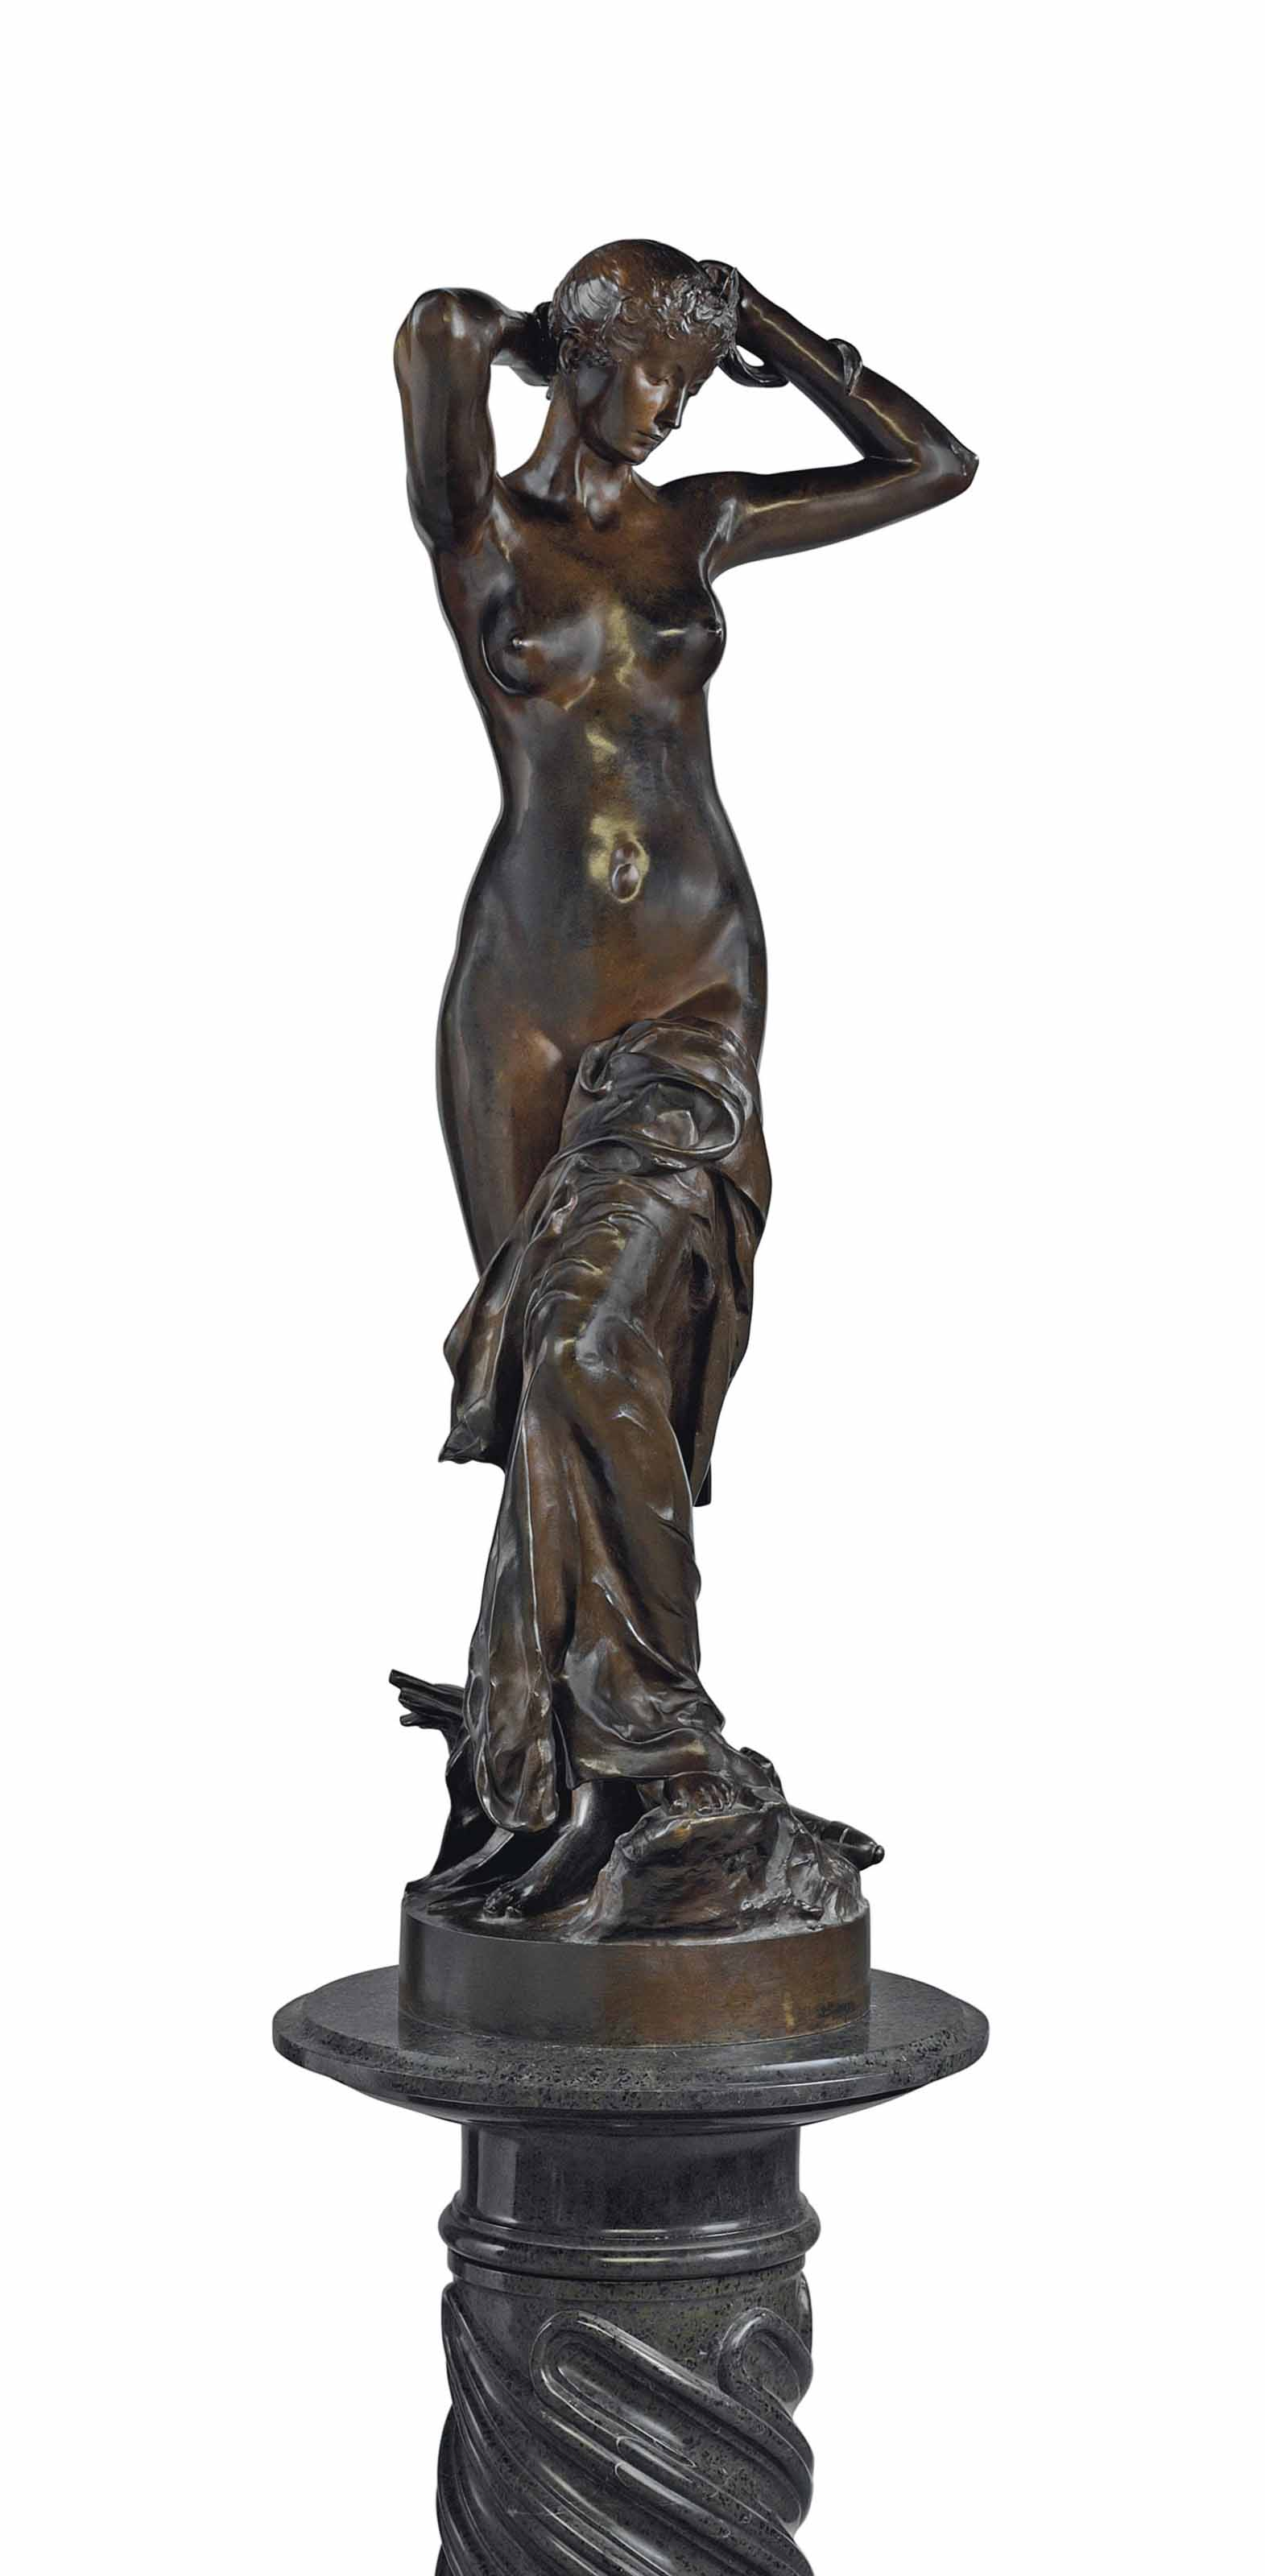 A FRENCH PATINATED BRONZE FIGURE ENTITLED 'DIANE APRES LE BAIN', ON PEDESTAL